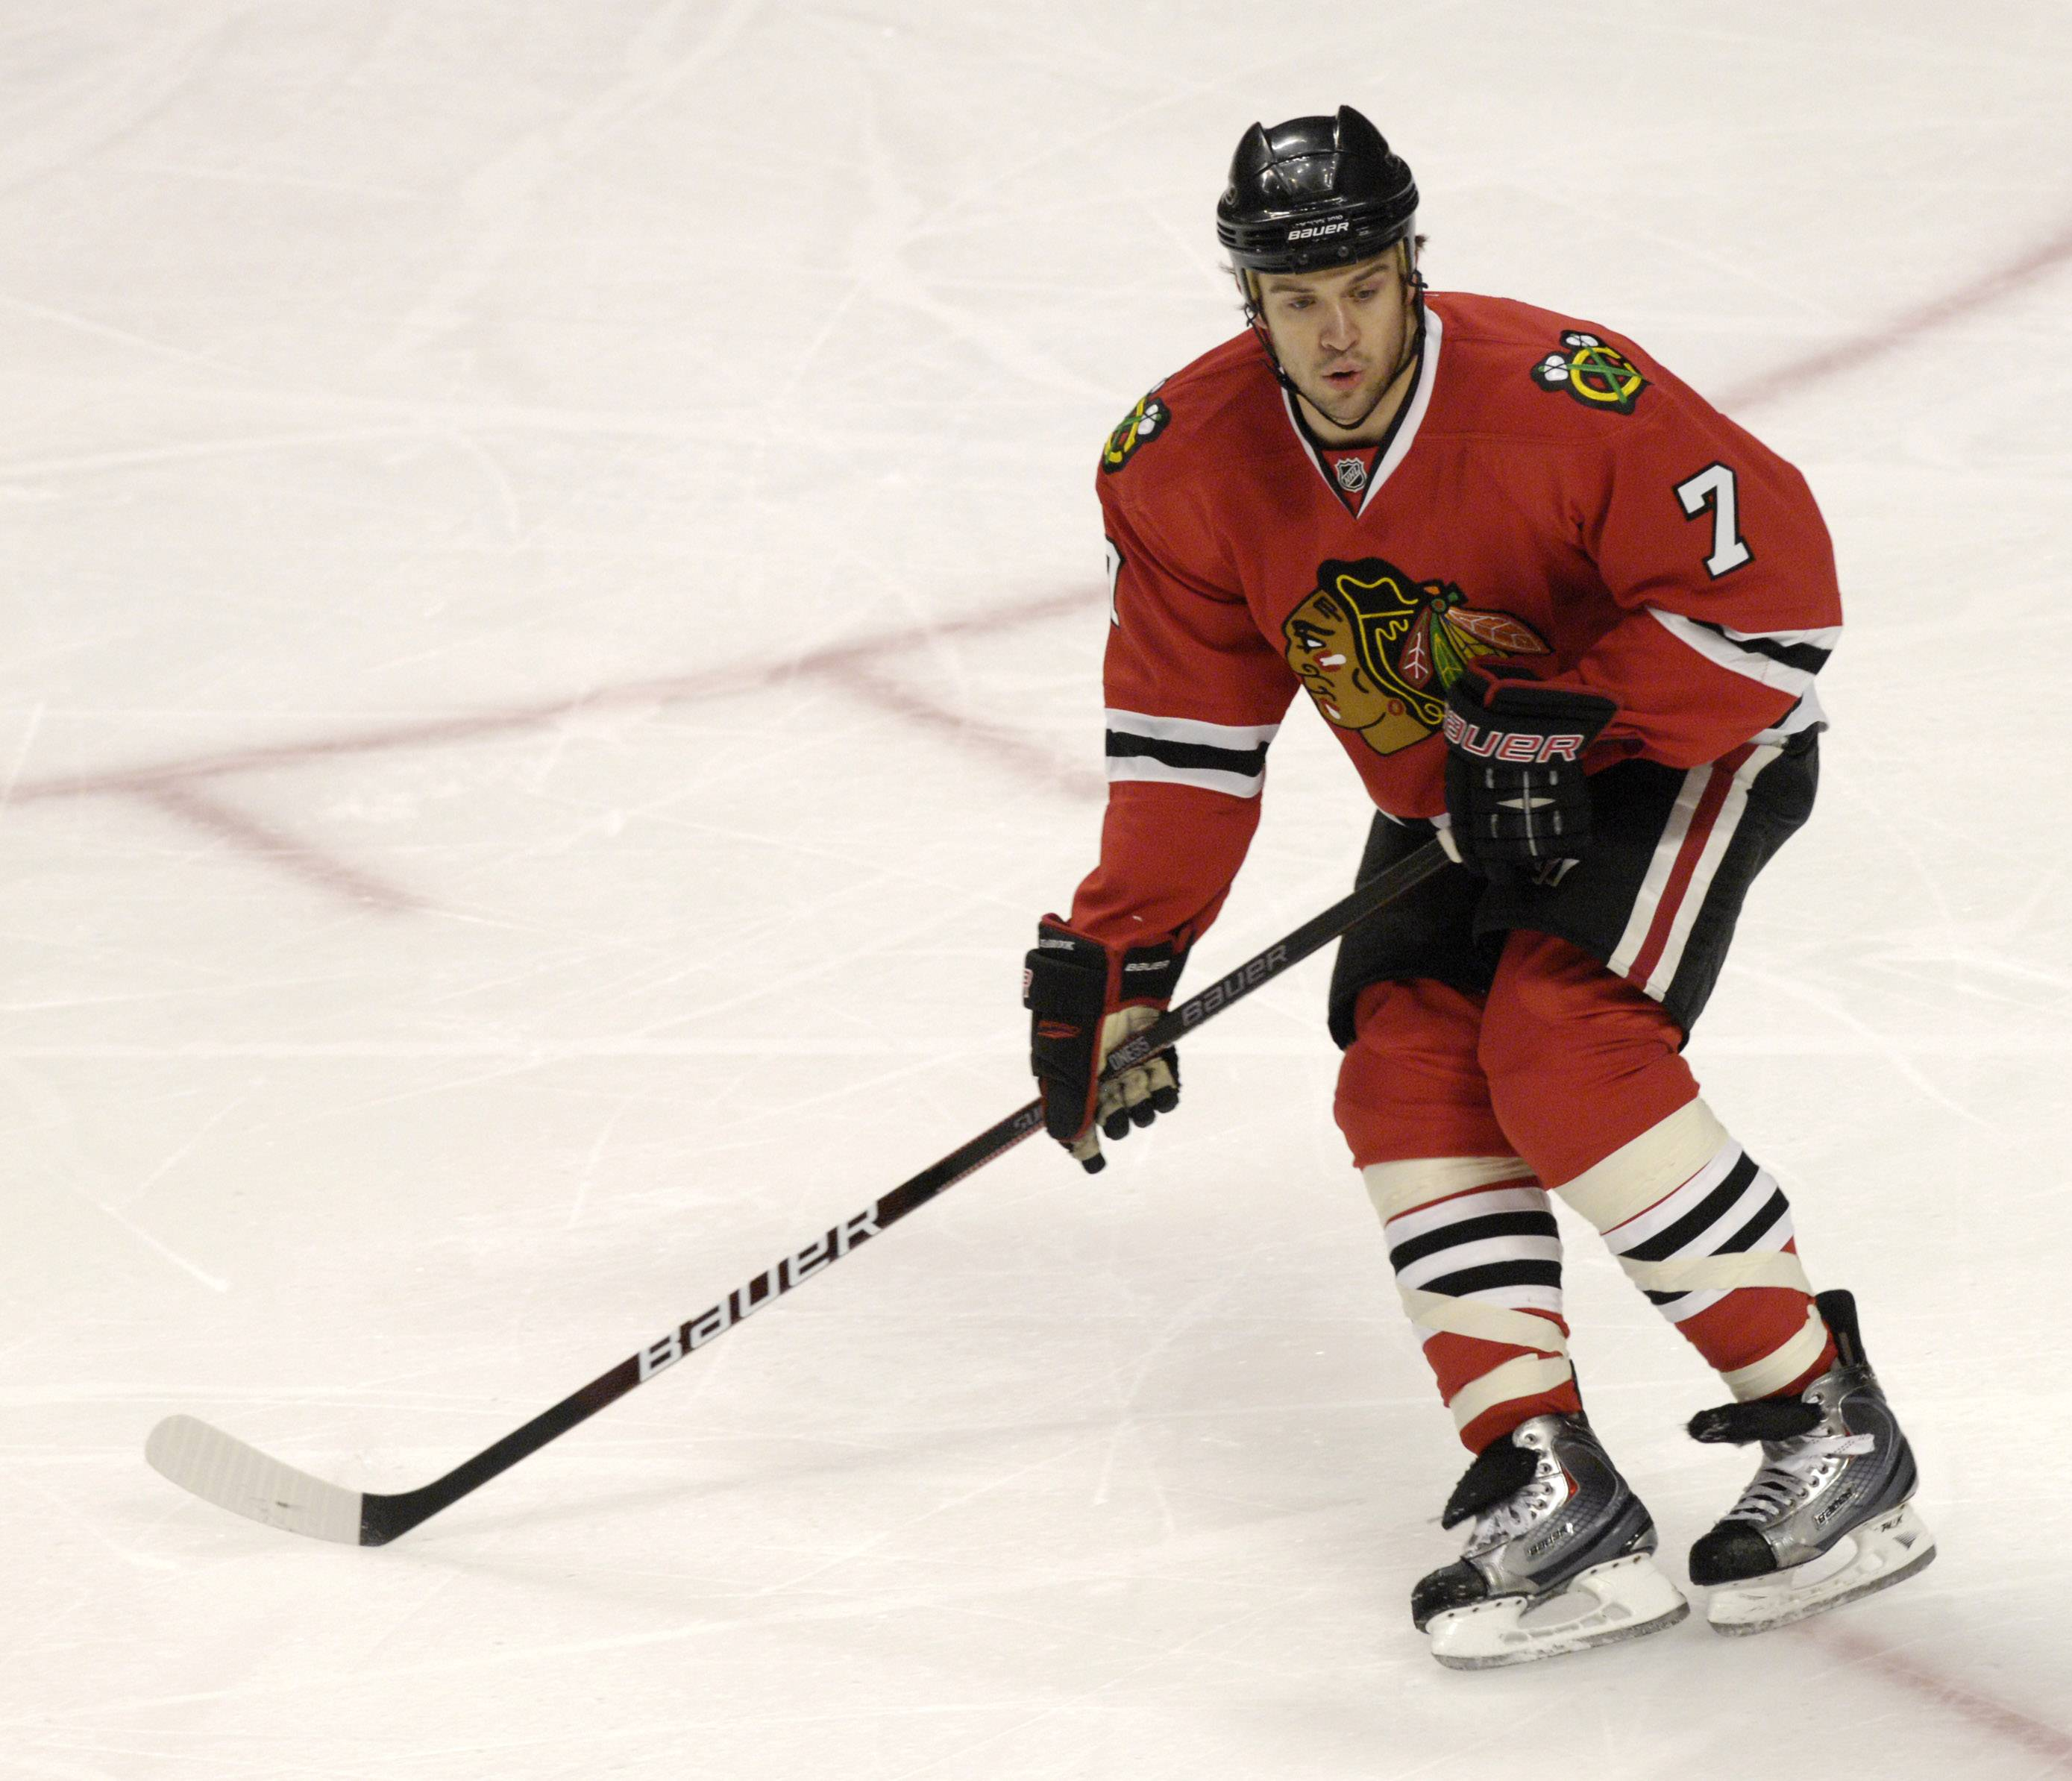 Hawks have uphill battle with Seabrook suspended